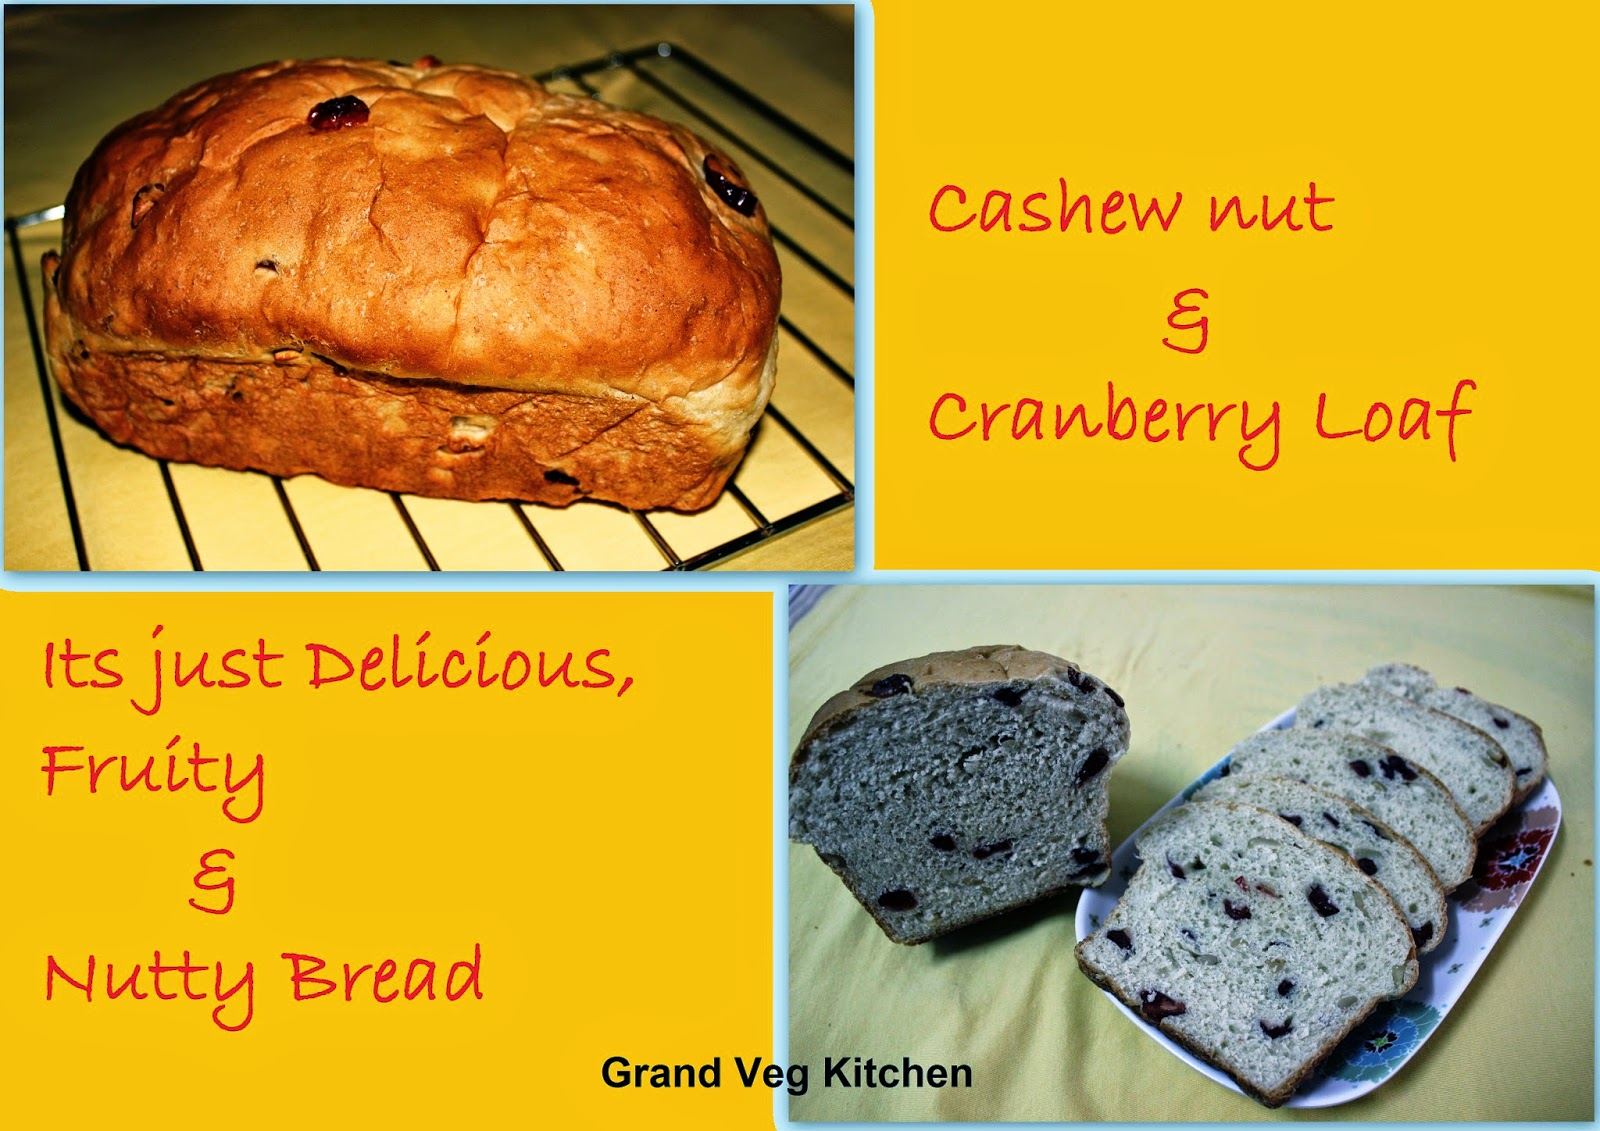 ... : Cashew nut & Cranberry Loaf –Delicious, Fruity & Nutty Bread